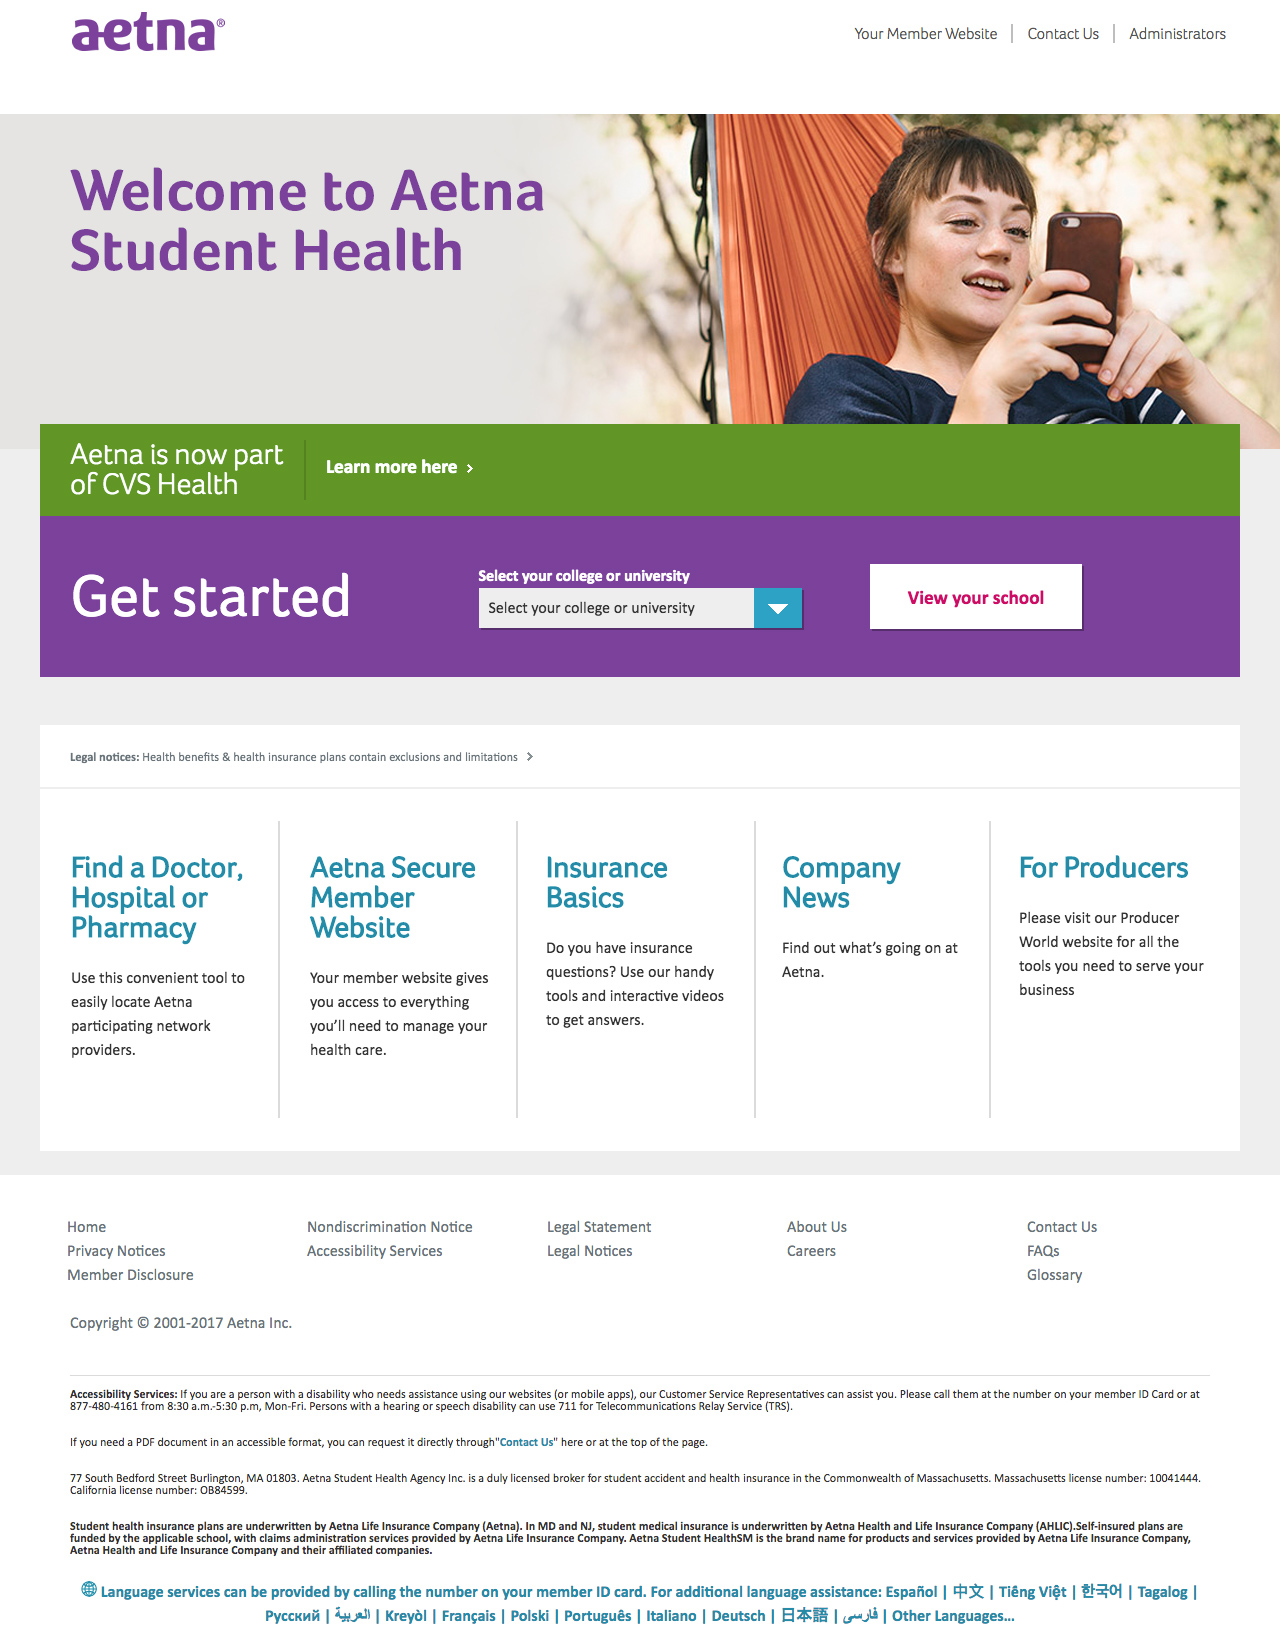 AetnaStudentHealth_screens1.jpg